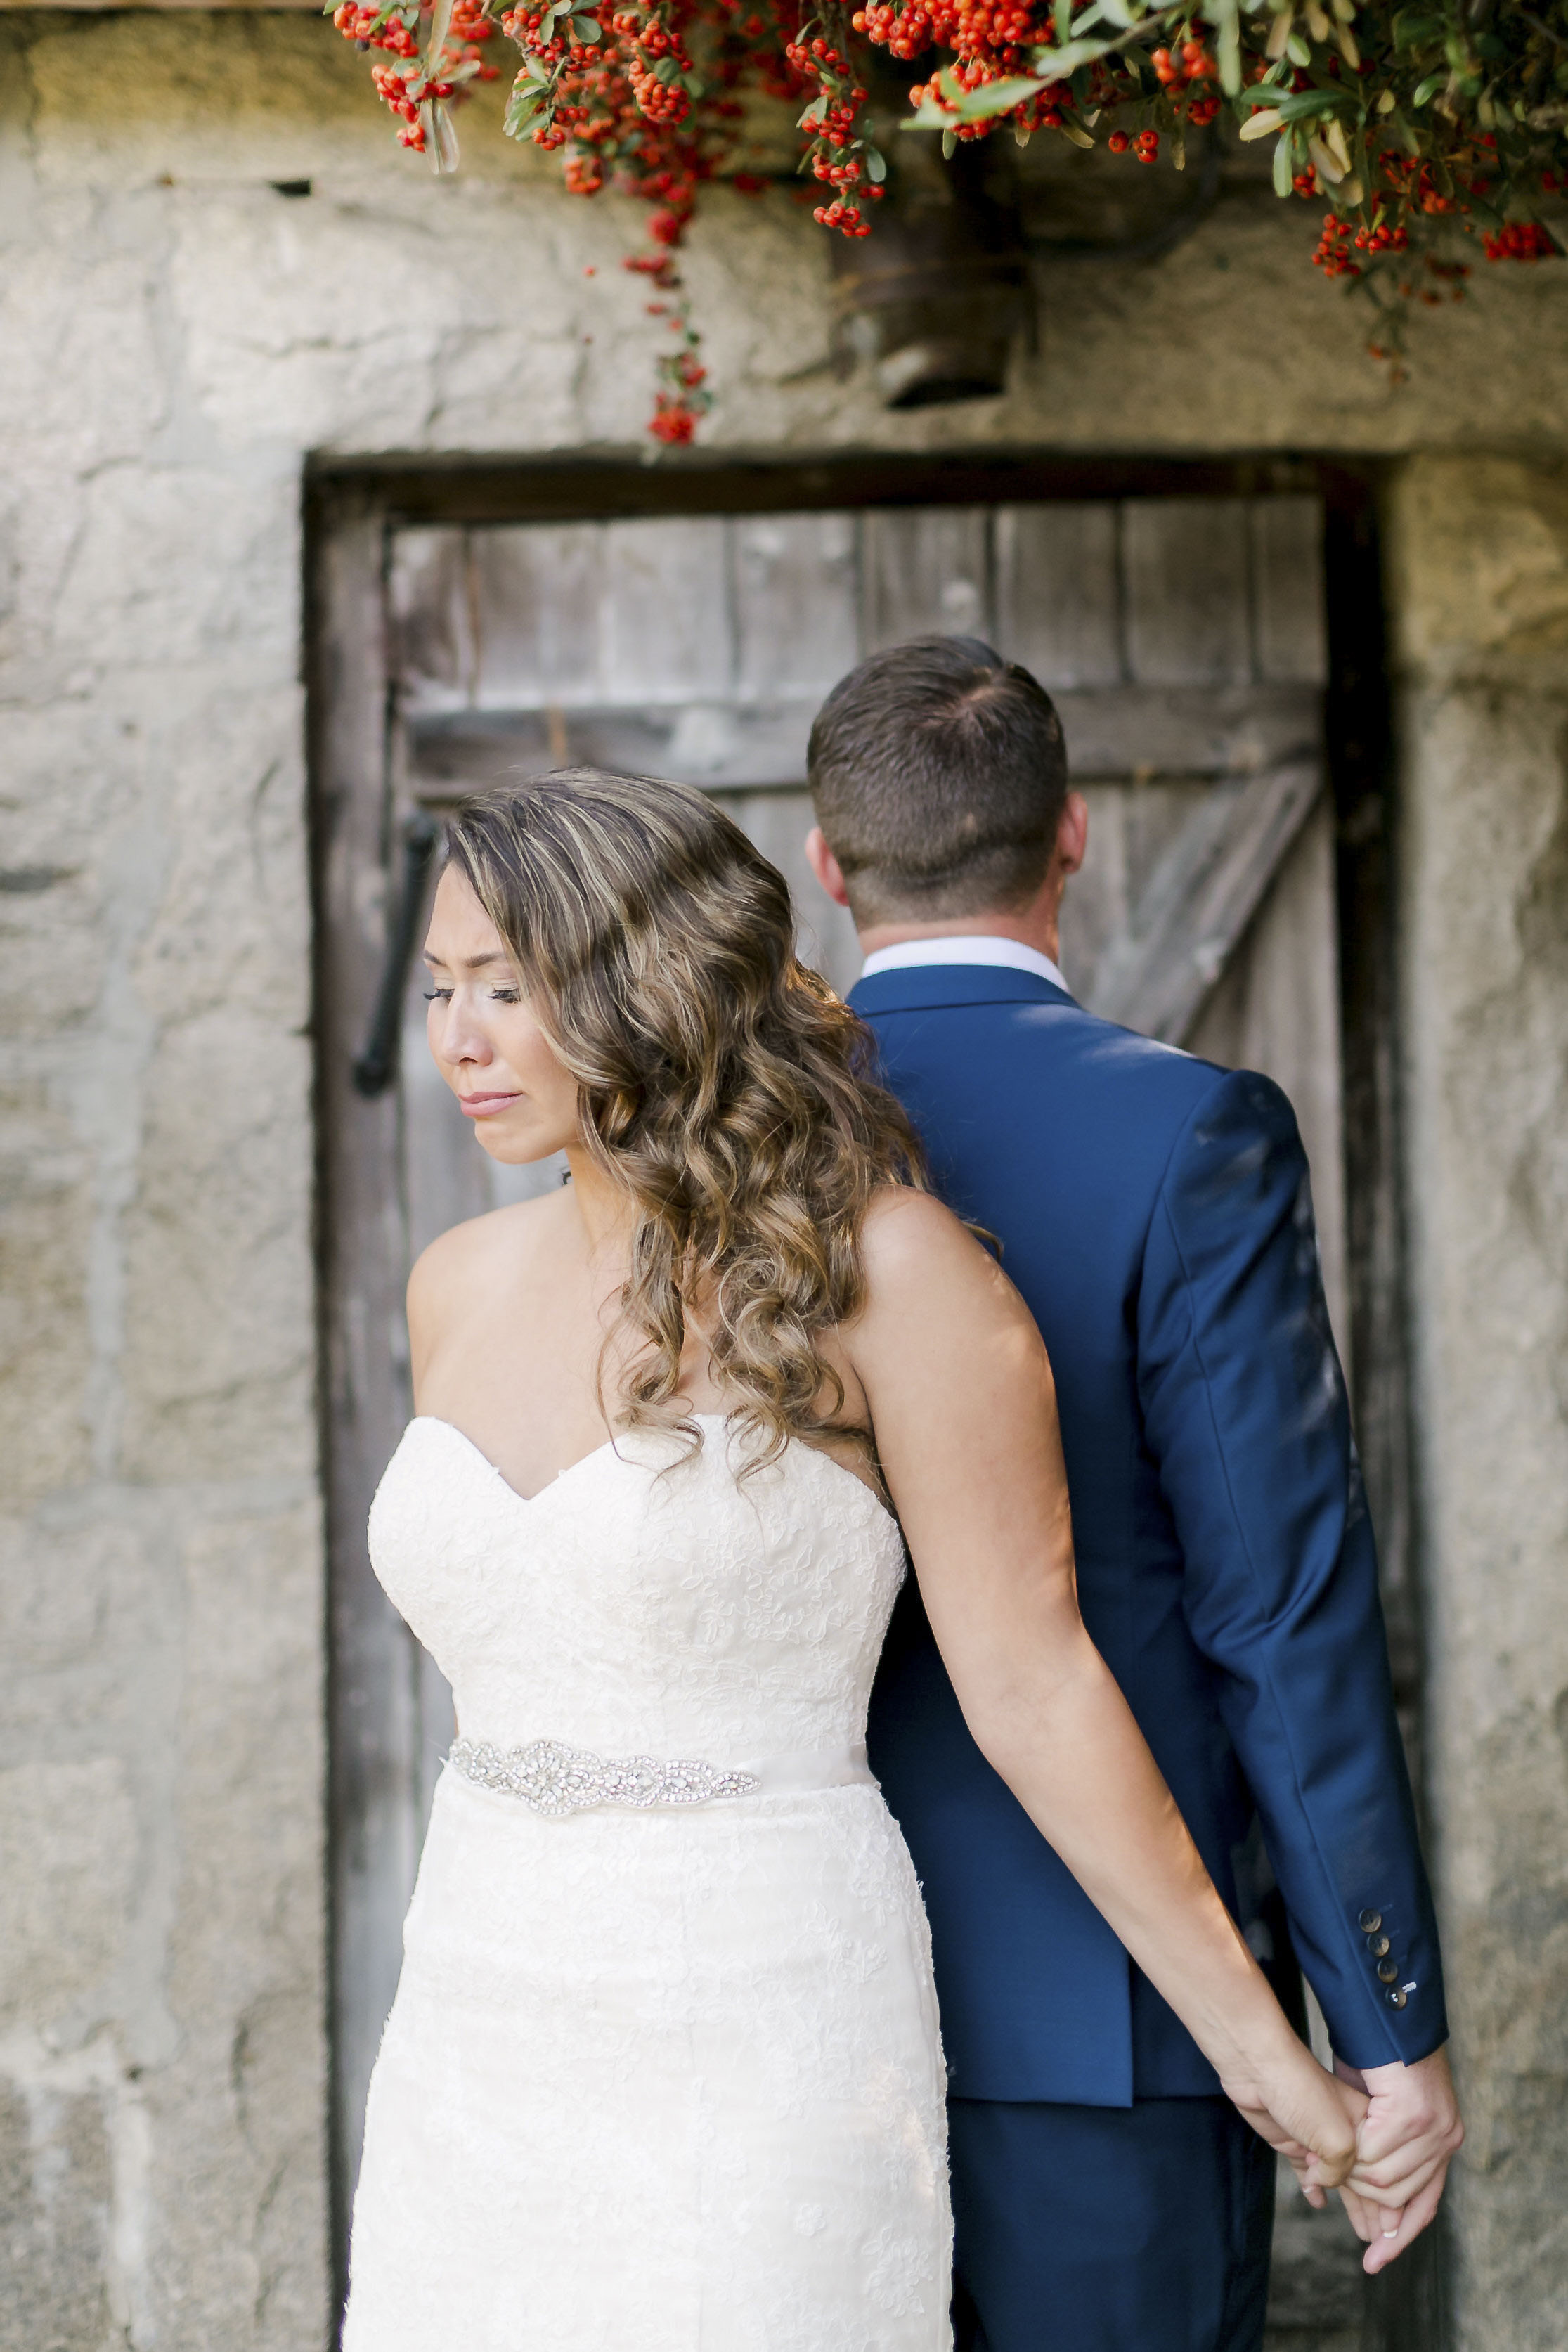 Domenica Beauty _ Hair and Makeup Artist _Wedding _ Temecula, CA _ Samantha and Derek _ 17.JPG